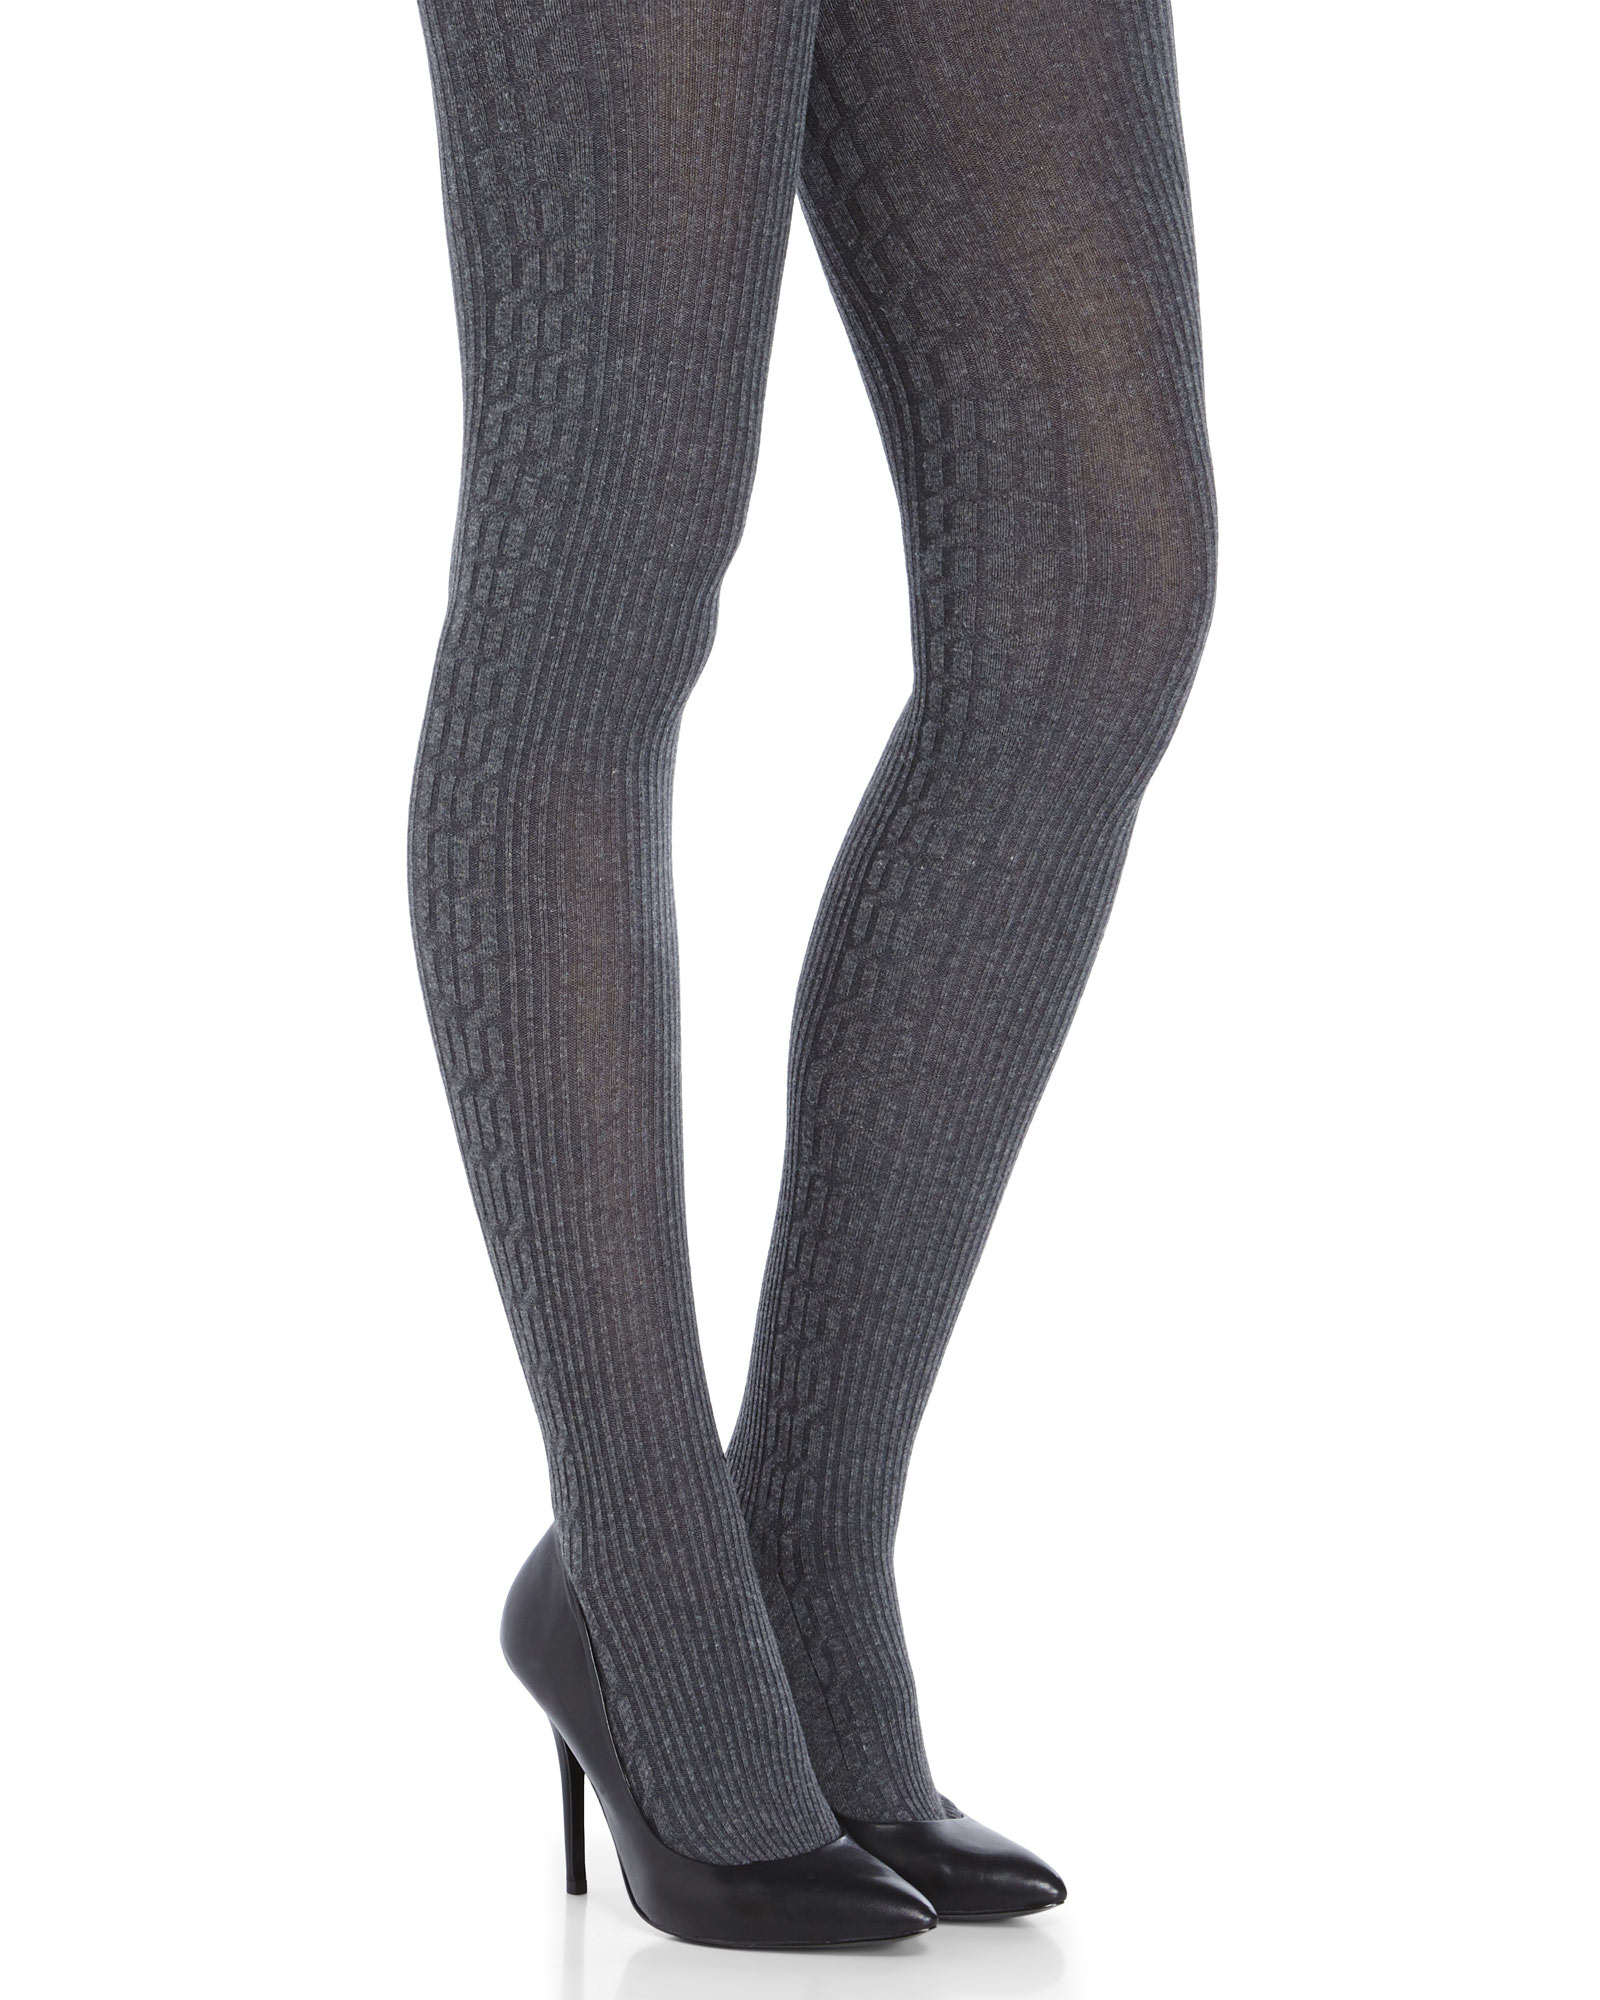 Cable Knit Sweater Tights Choice Image - Craft Design Ideas